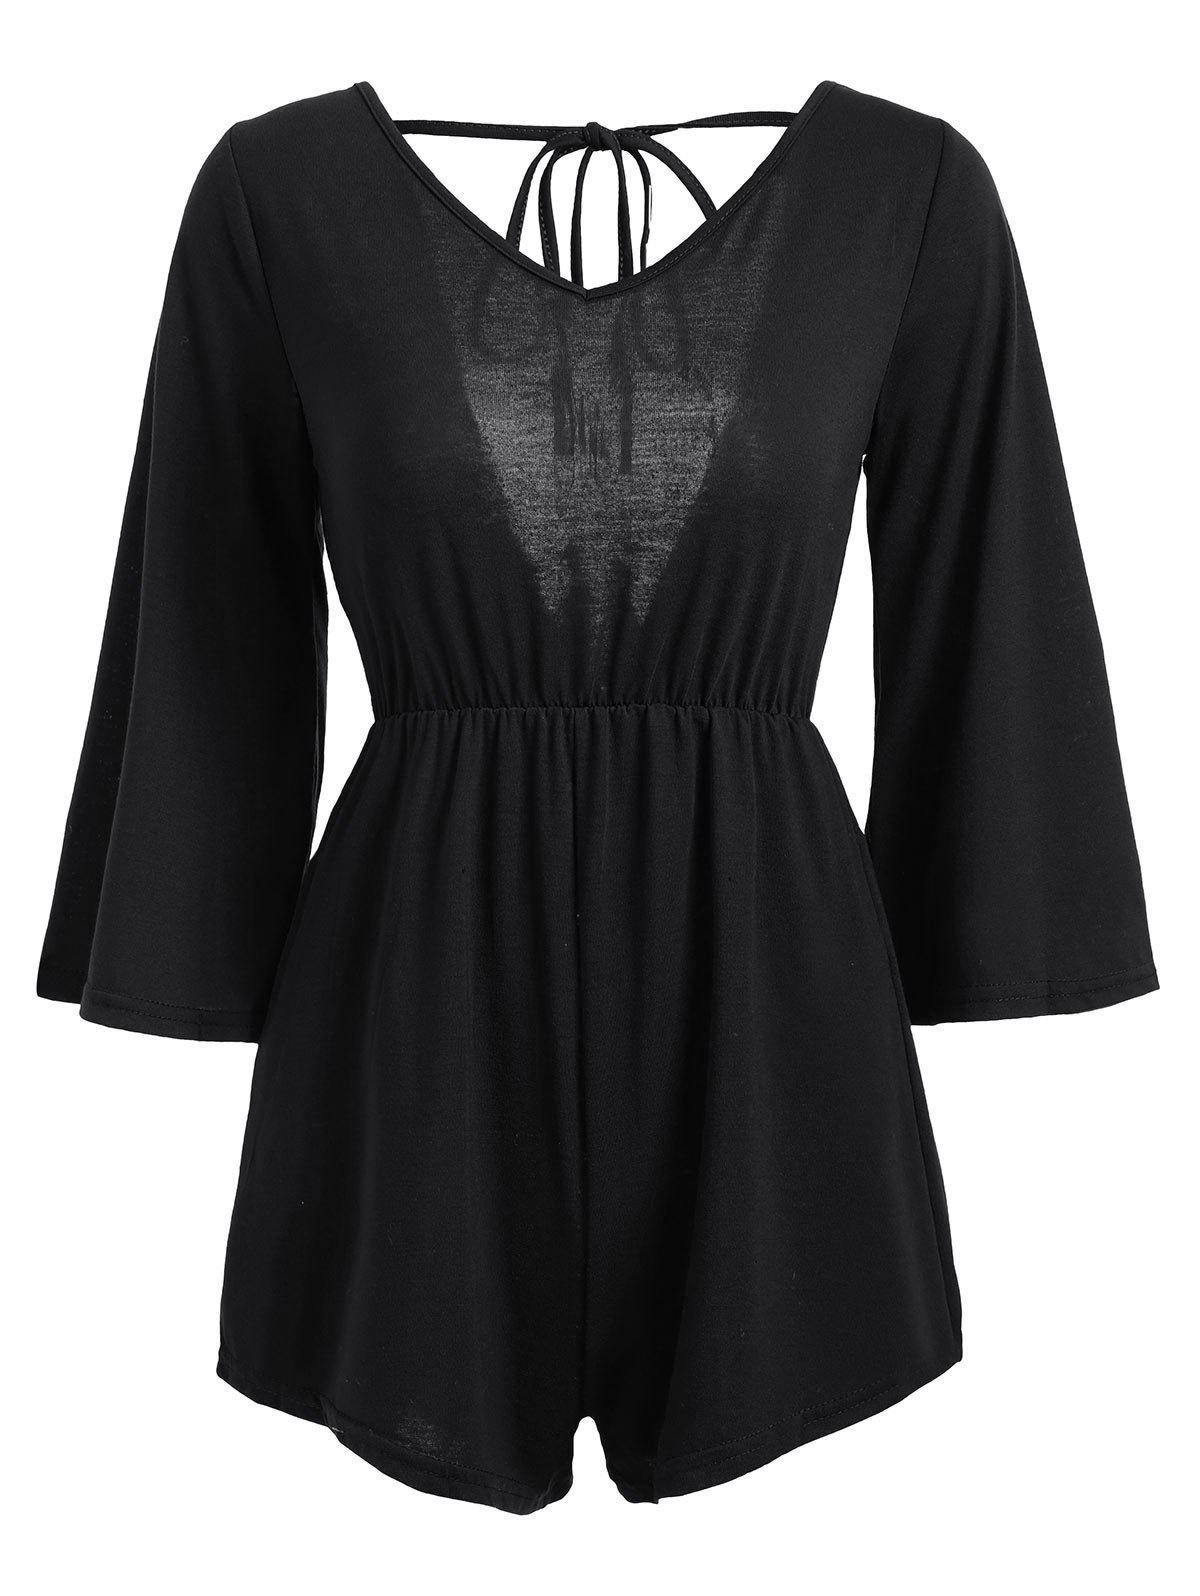 Tassel Open Back V Neck Romper - BLACK XL